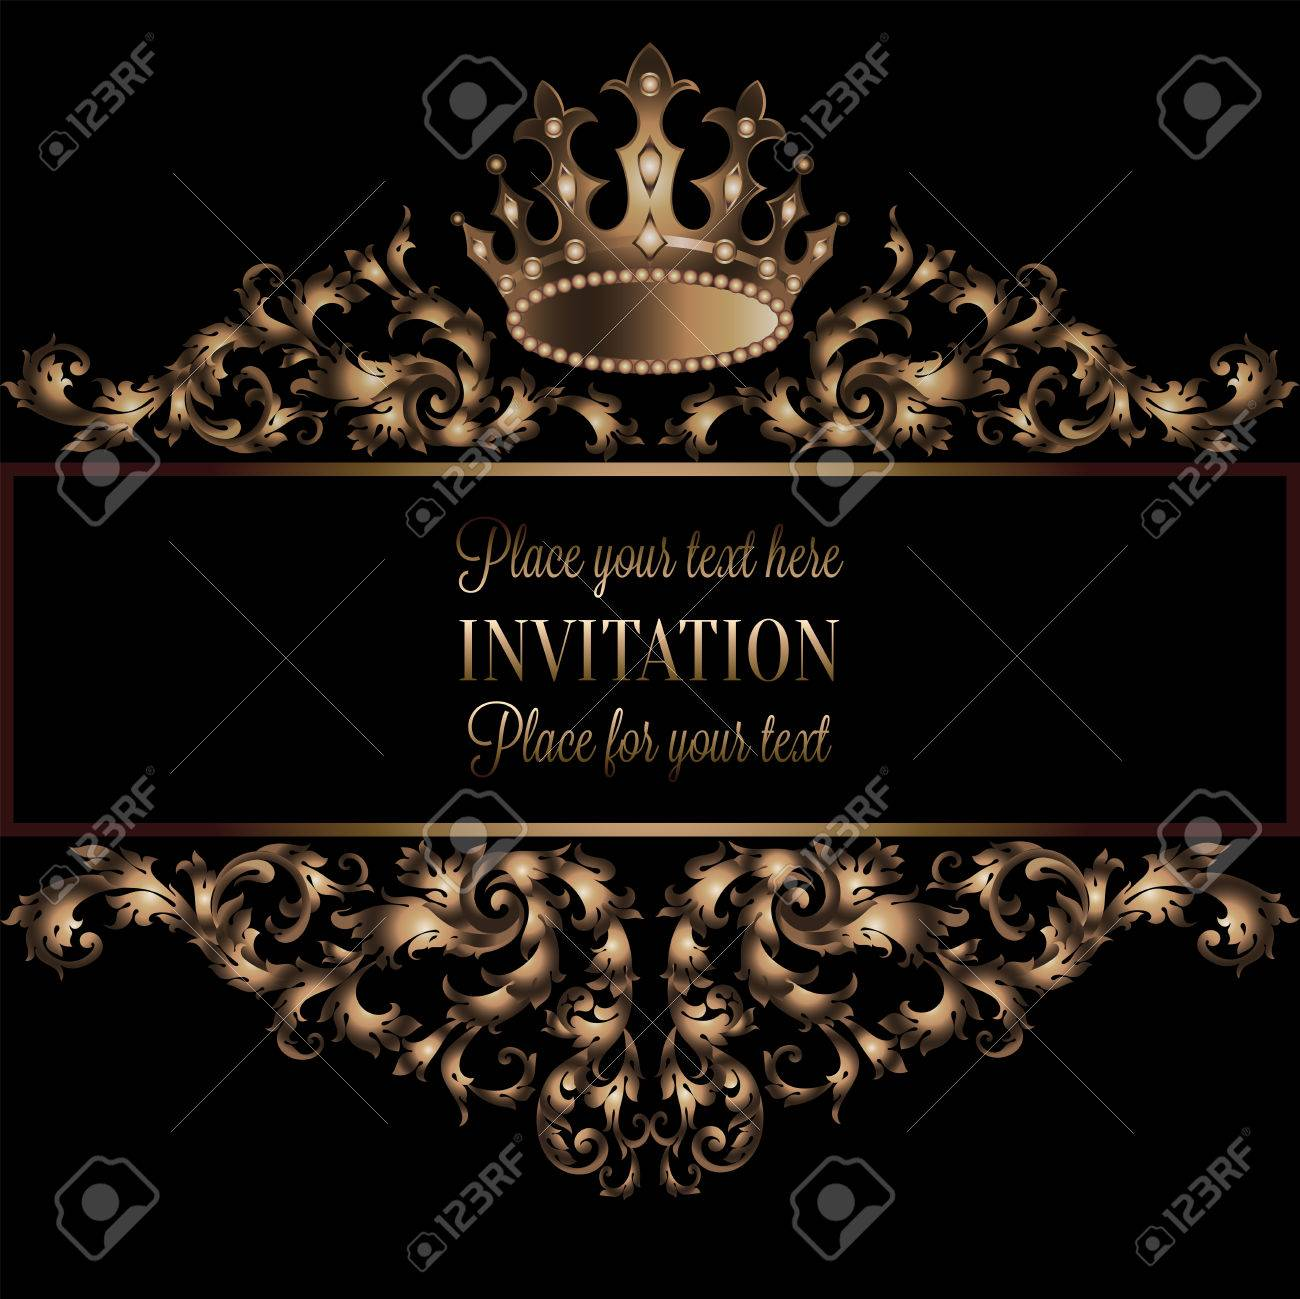 Free Download Vintage Gold Invitation Card With Black